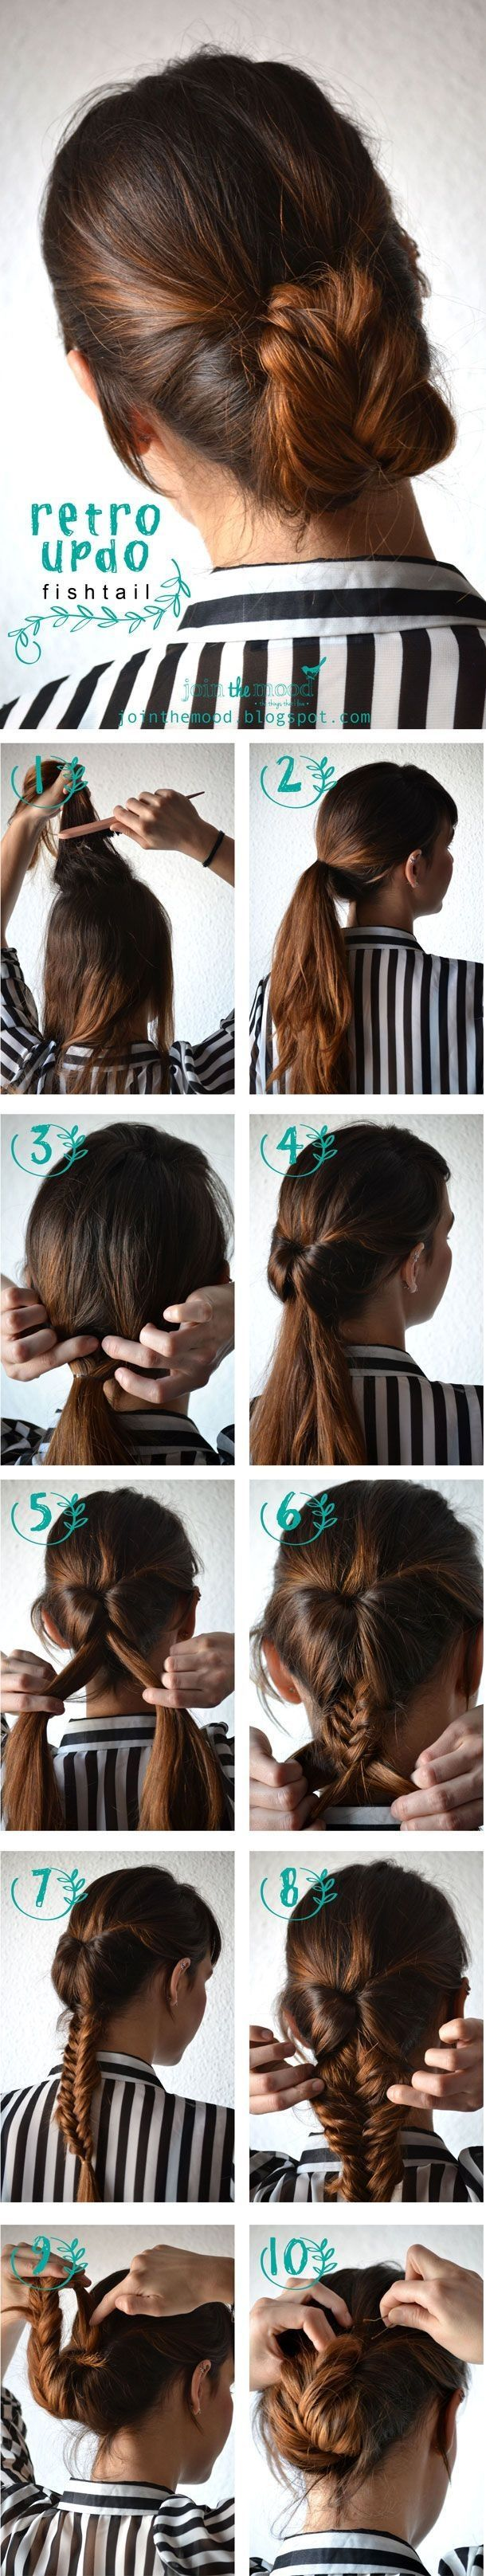 Marvelous Trendy Haircuts 14 Amazing Pull Through Braid Hairstyles For 2014 Schematic Wiring Diagrams Amerangerunnerswayorg